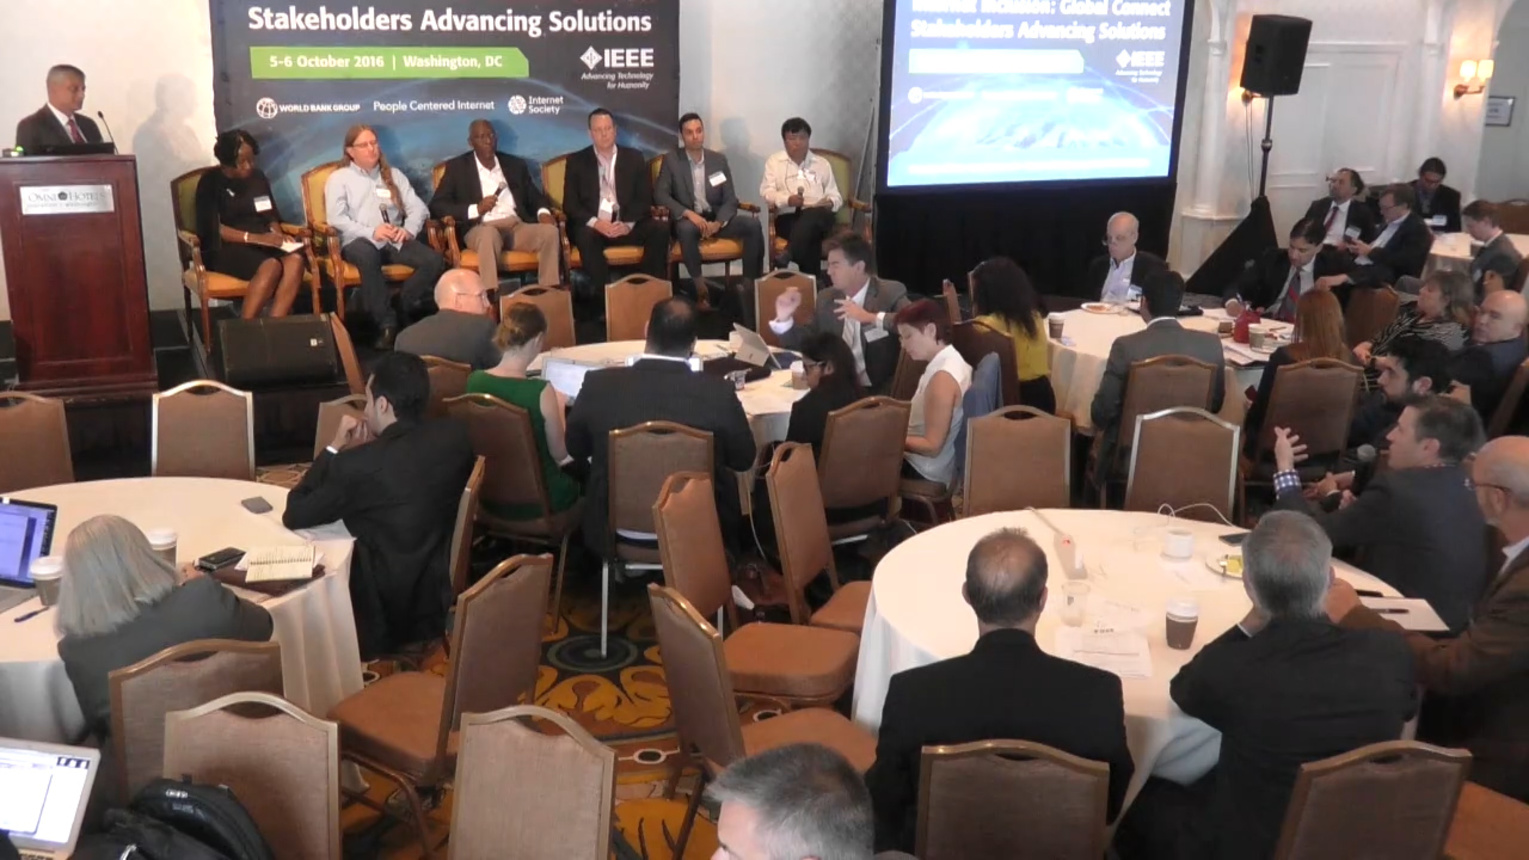 Roundtable: Technologists Connection - Internet Inclusion: Global Connect Stakeholders Advancing Solutions, Washington DC, 2016